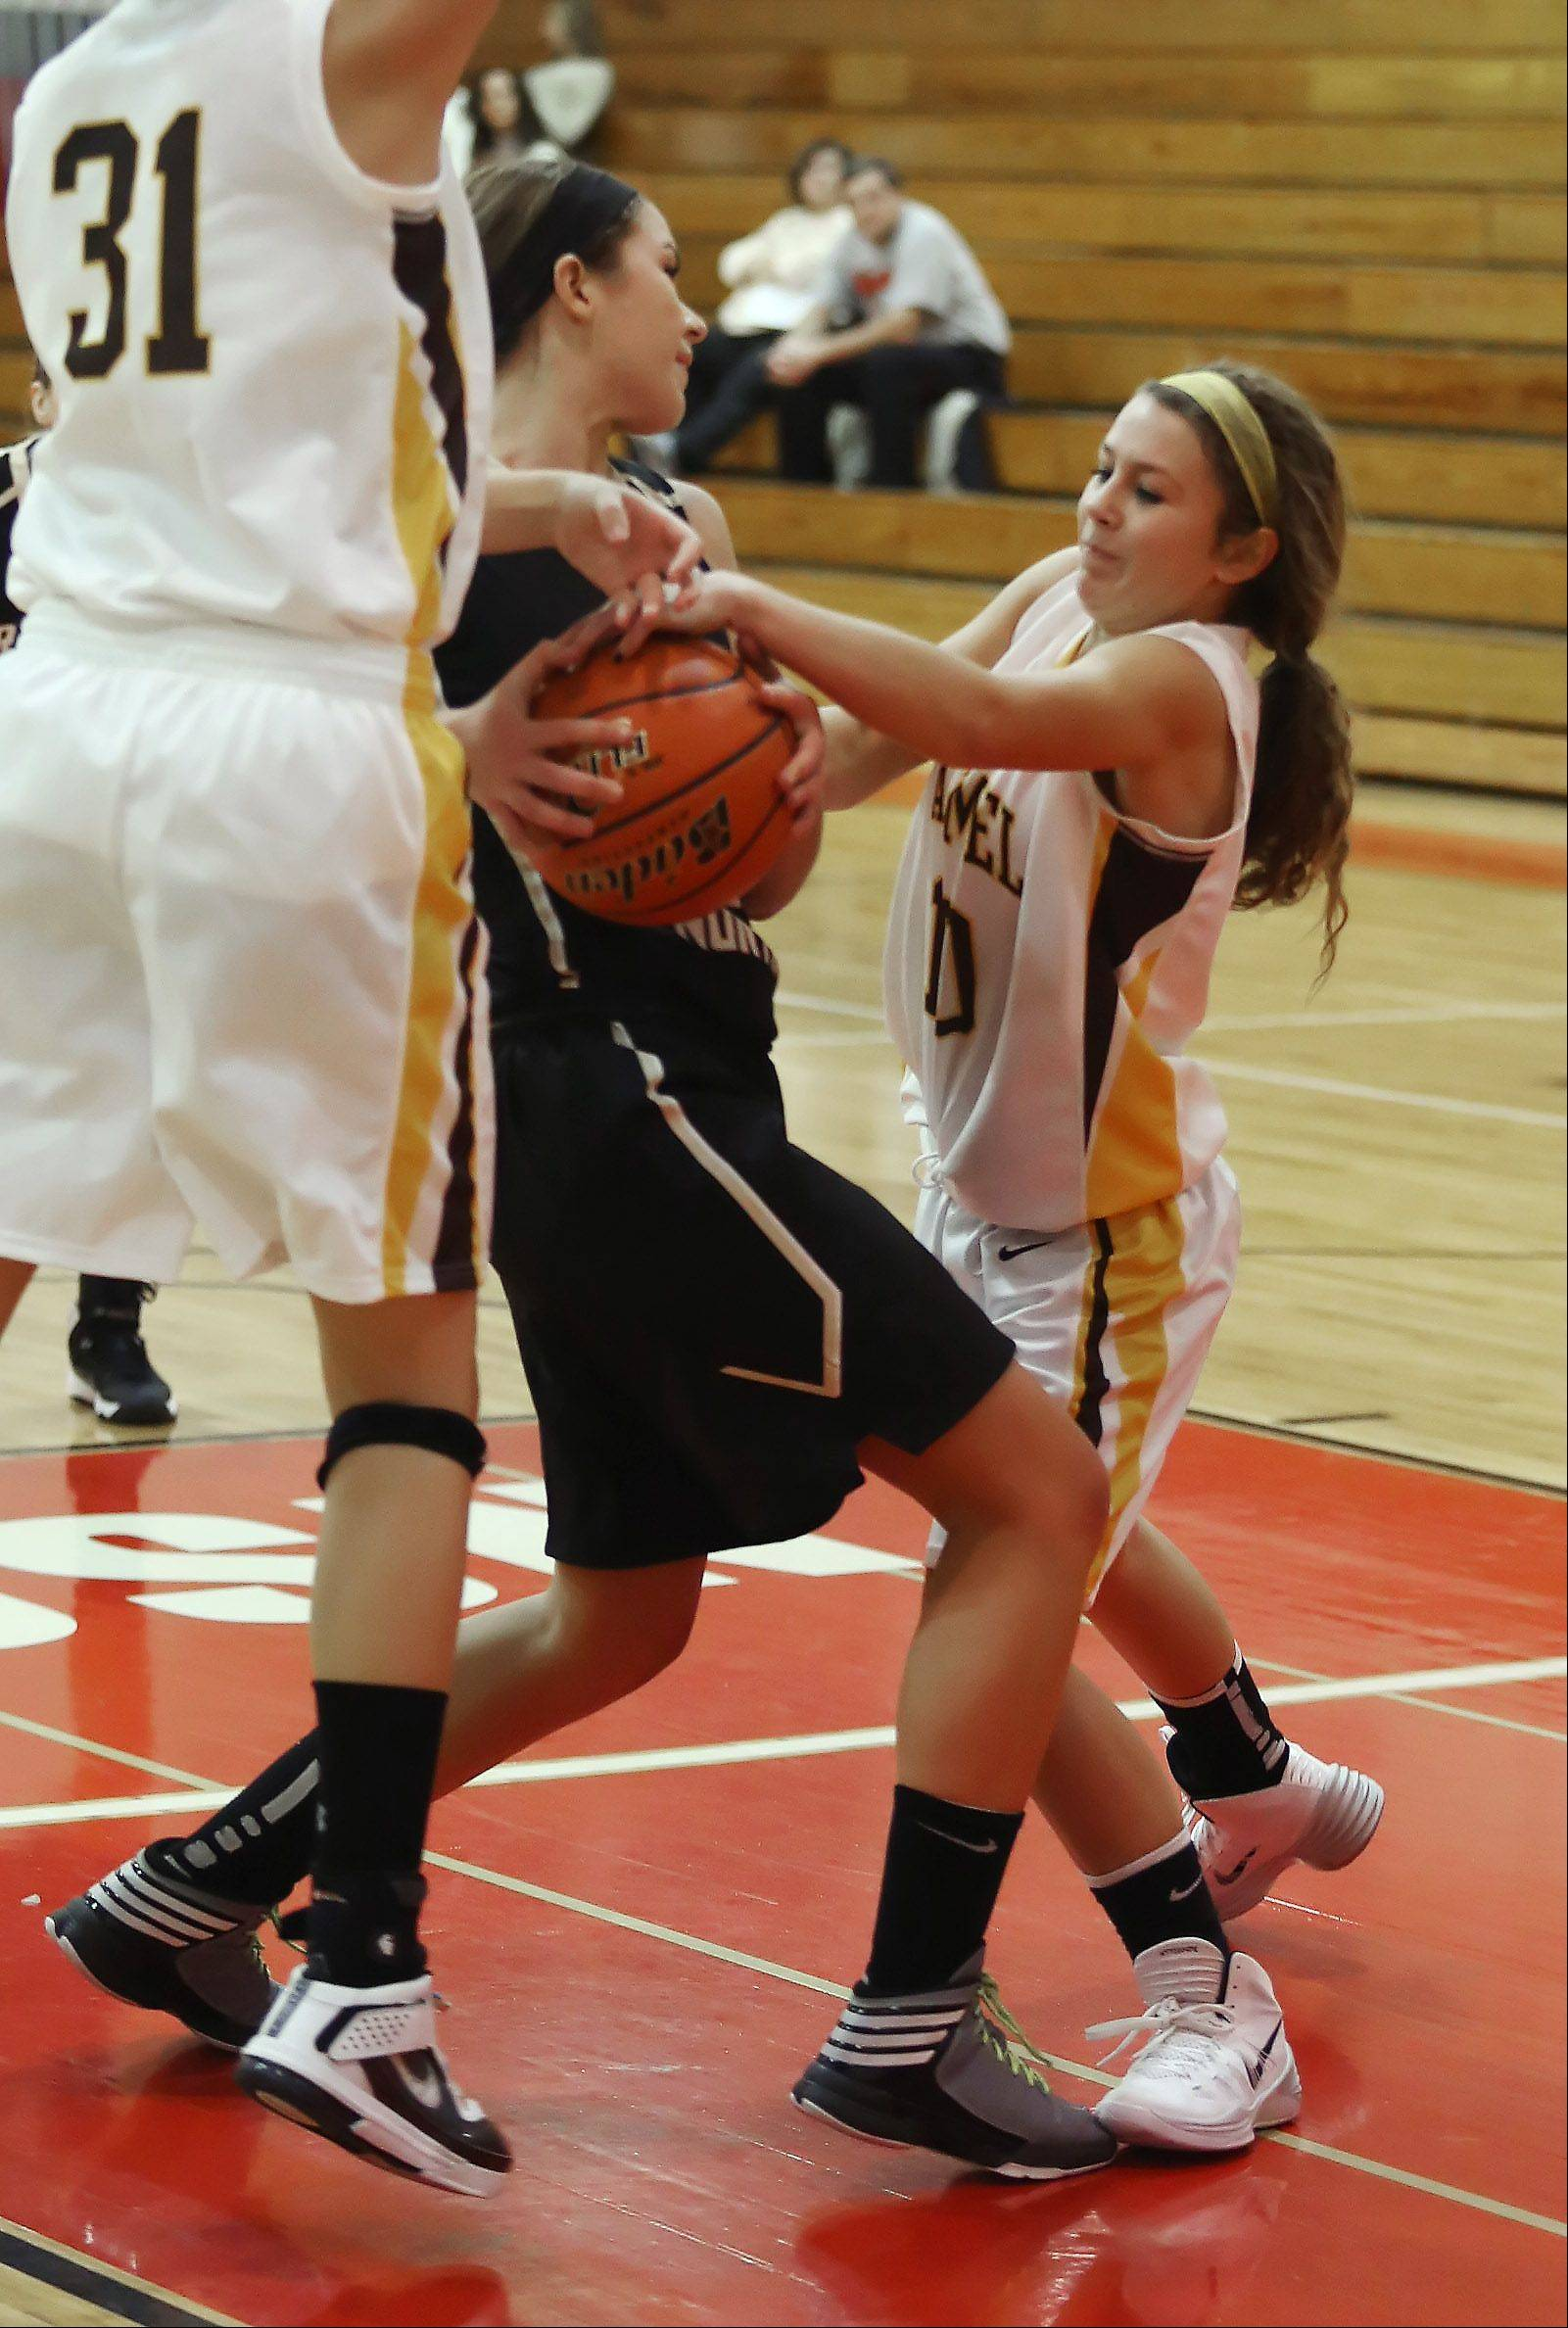 Carmel guard Sam Melillo tries to take the ball from Grayslake North forward Ella Swanson on Monday in the Mundelein tournament.